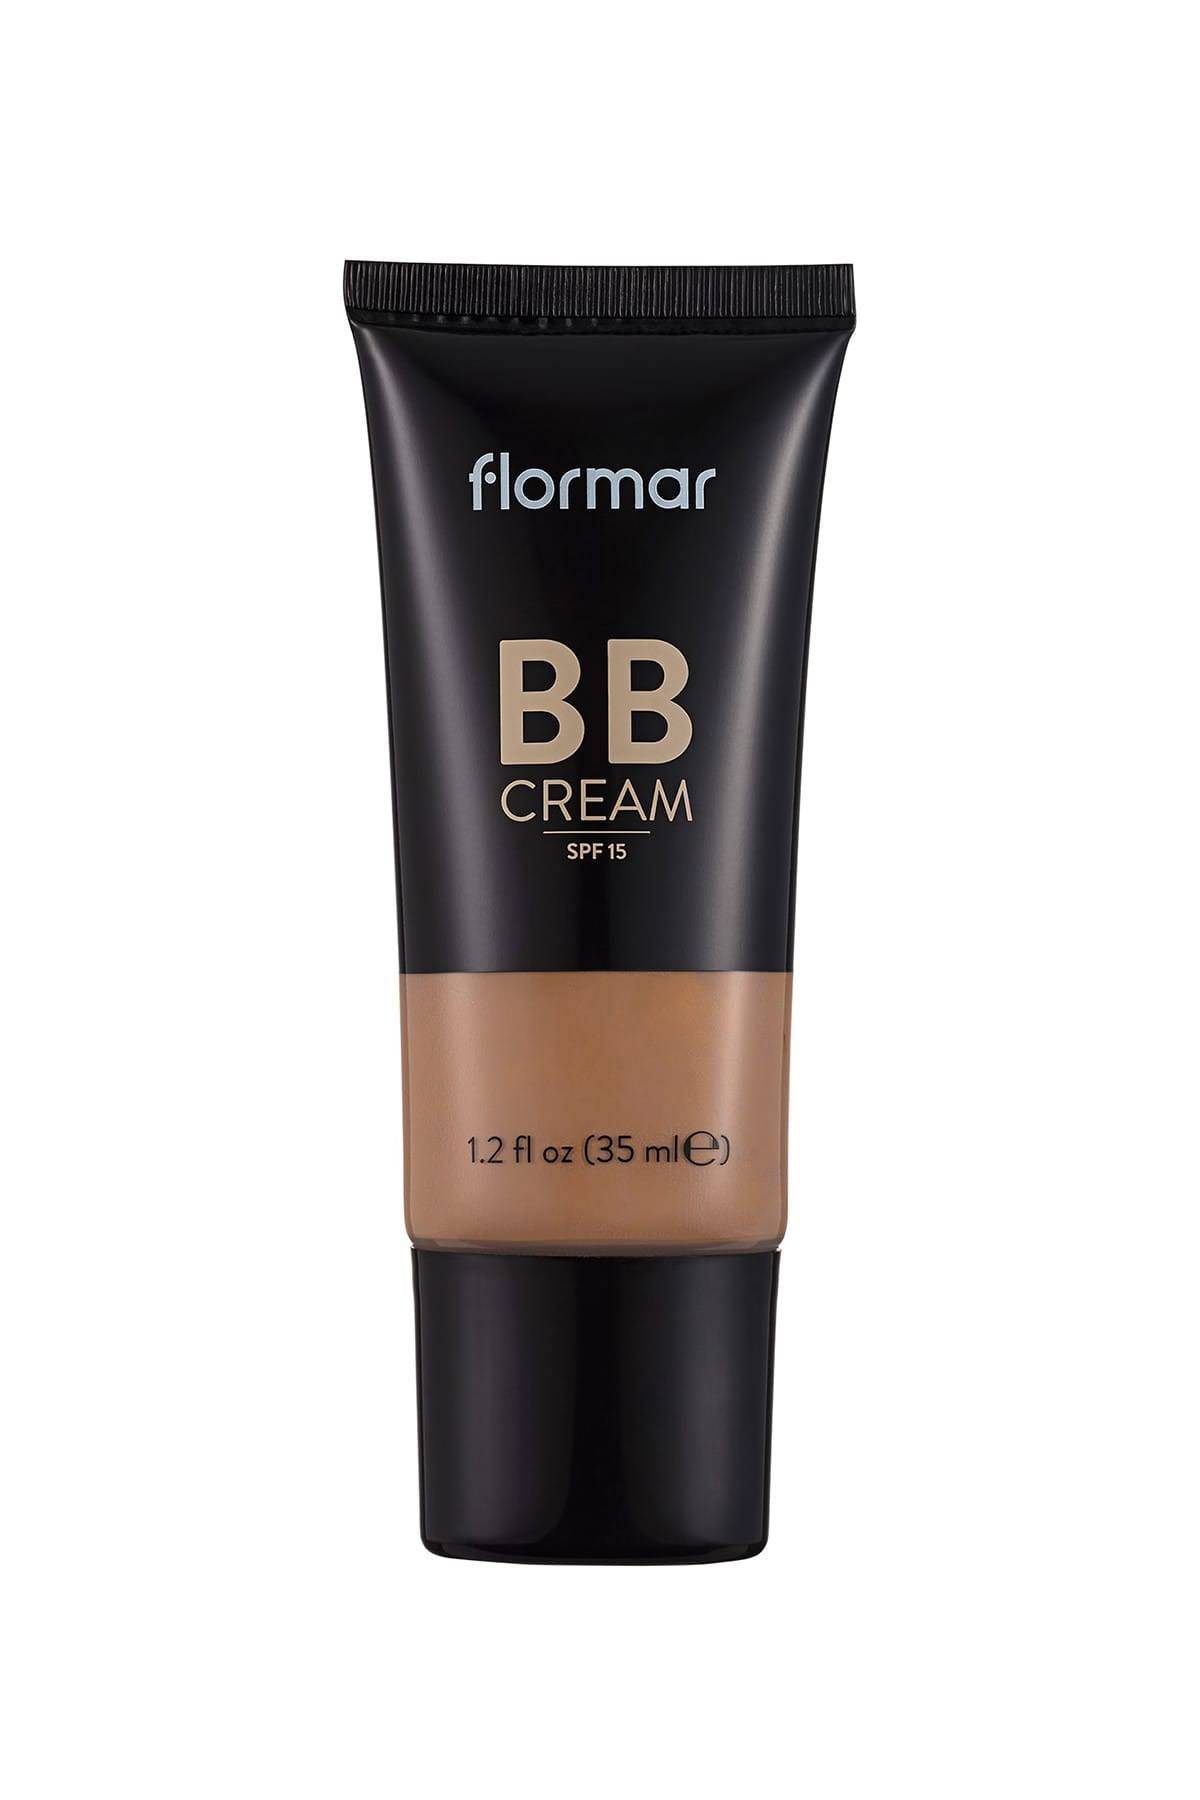 Flormar BB Cream - SPF15, BB06 Medium/Dark, 35ml